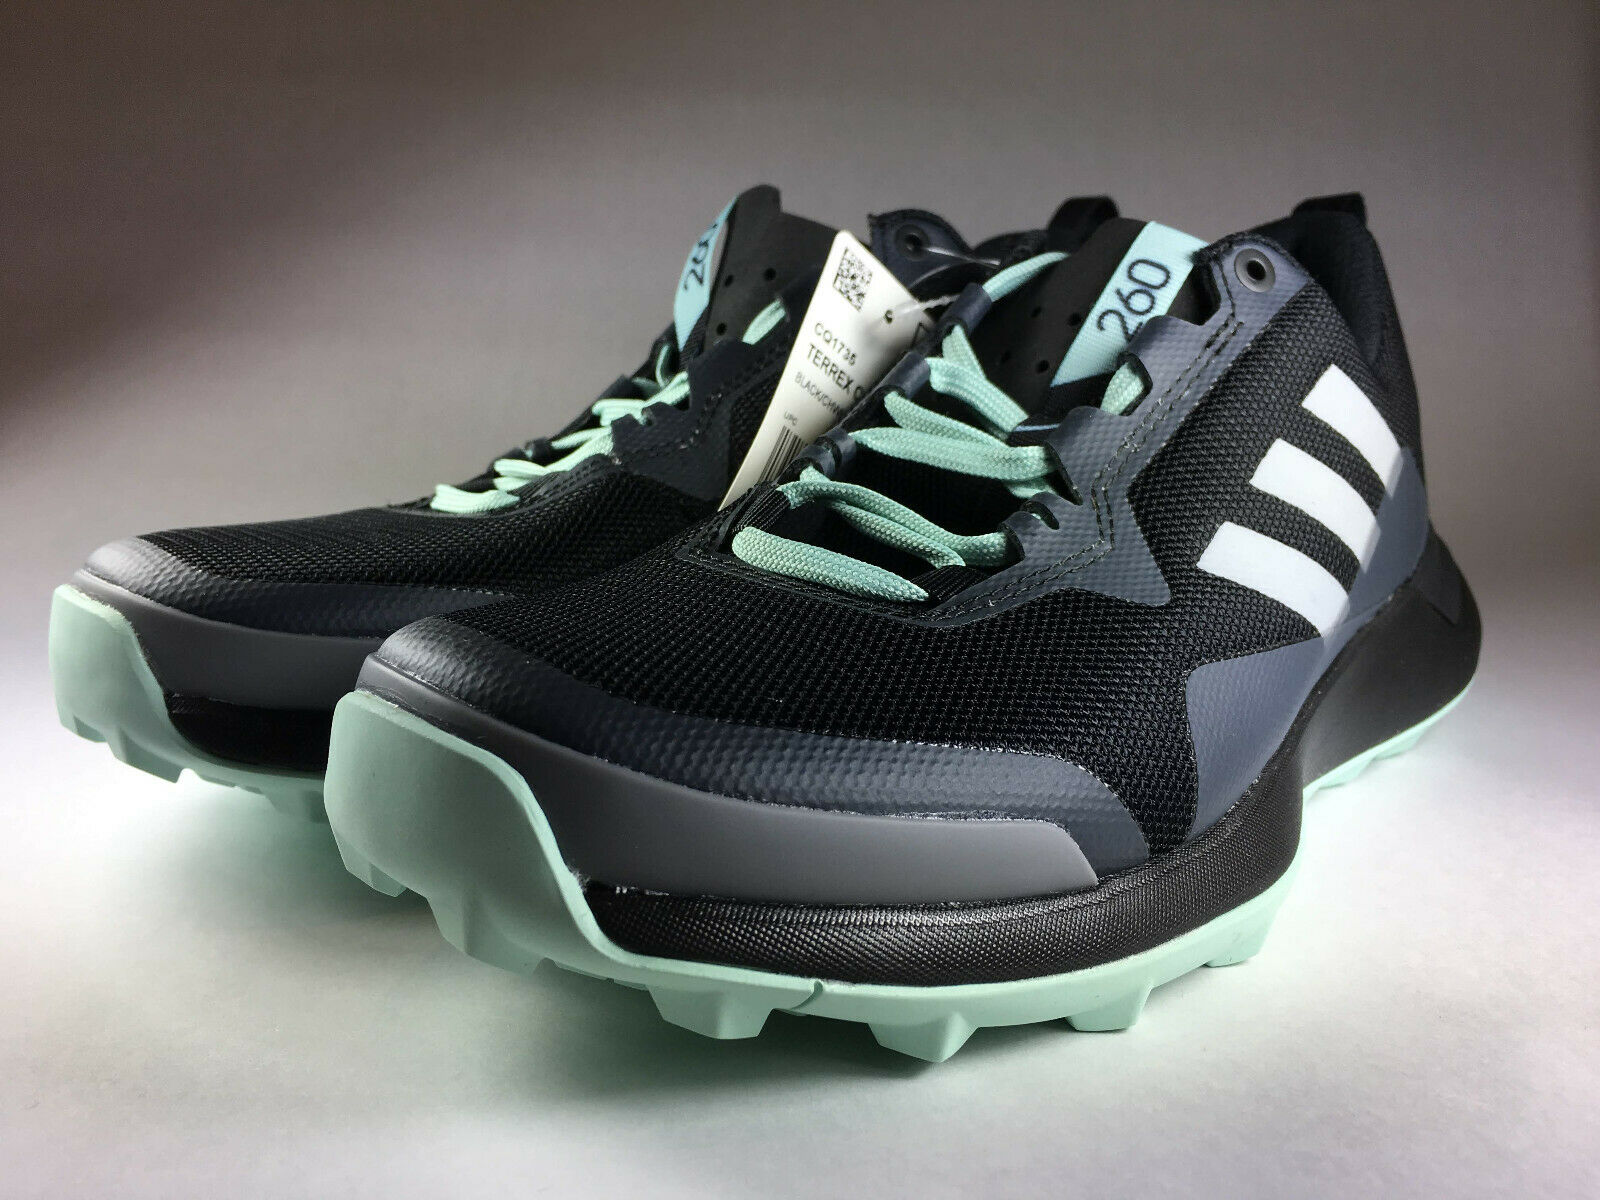 Adidas CMTK Women's shoes Size 9 Black Chalk Ash Green New With Tag